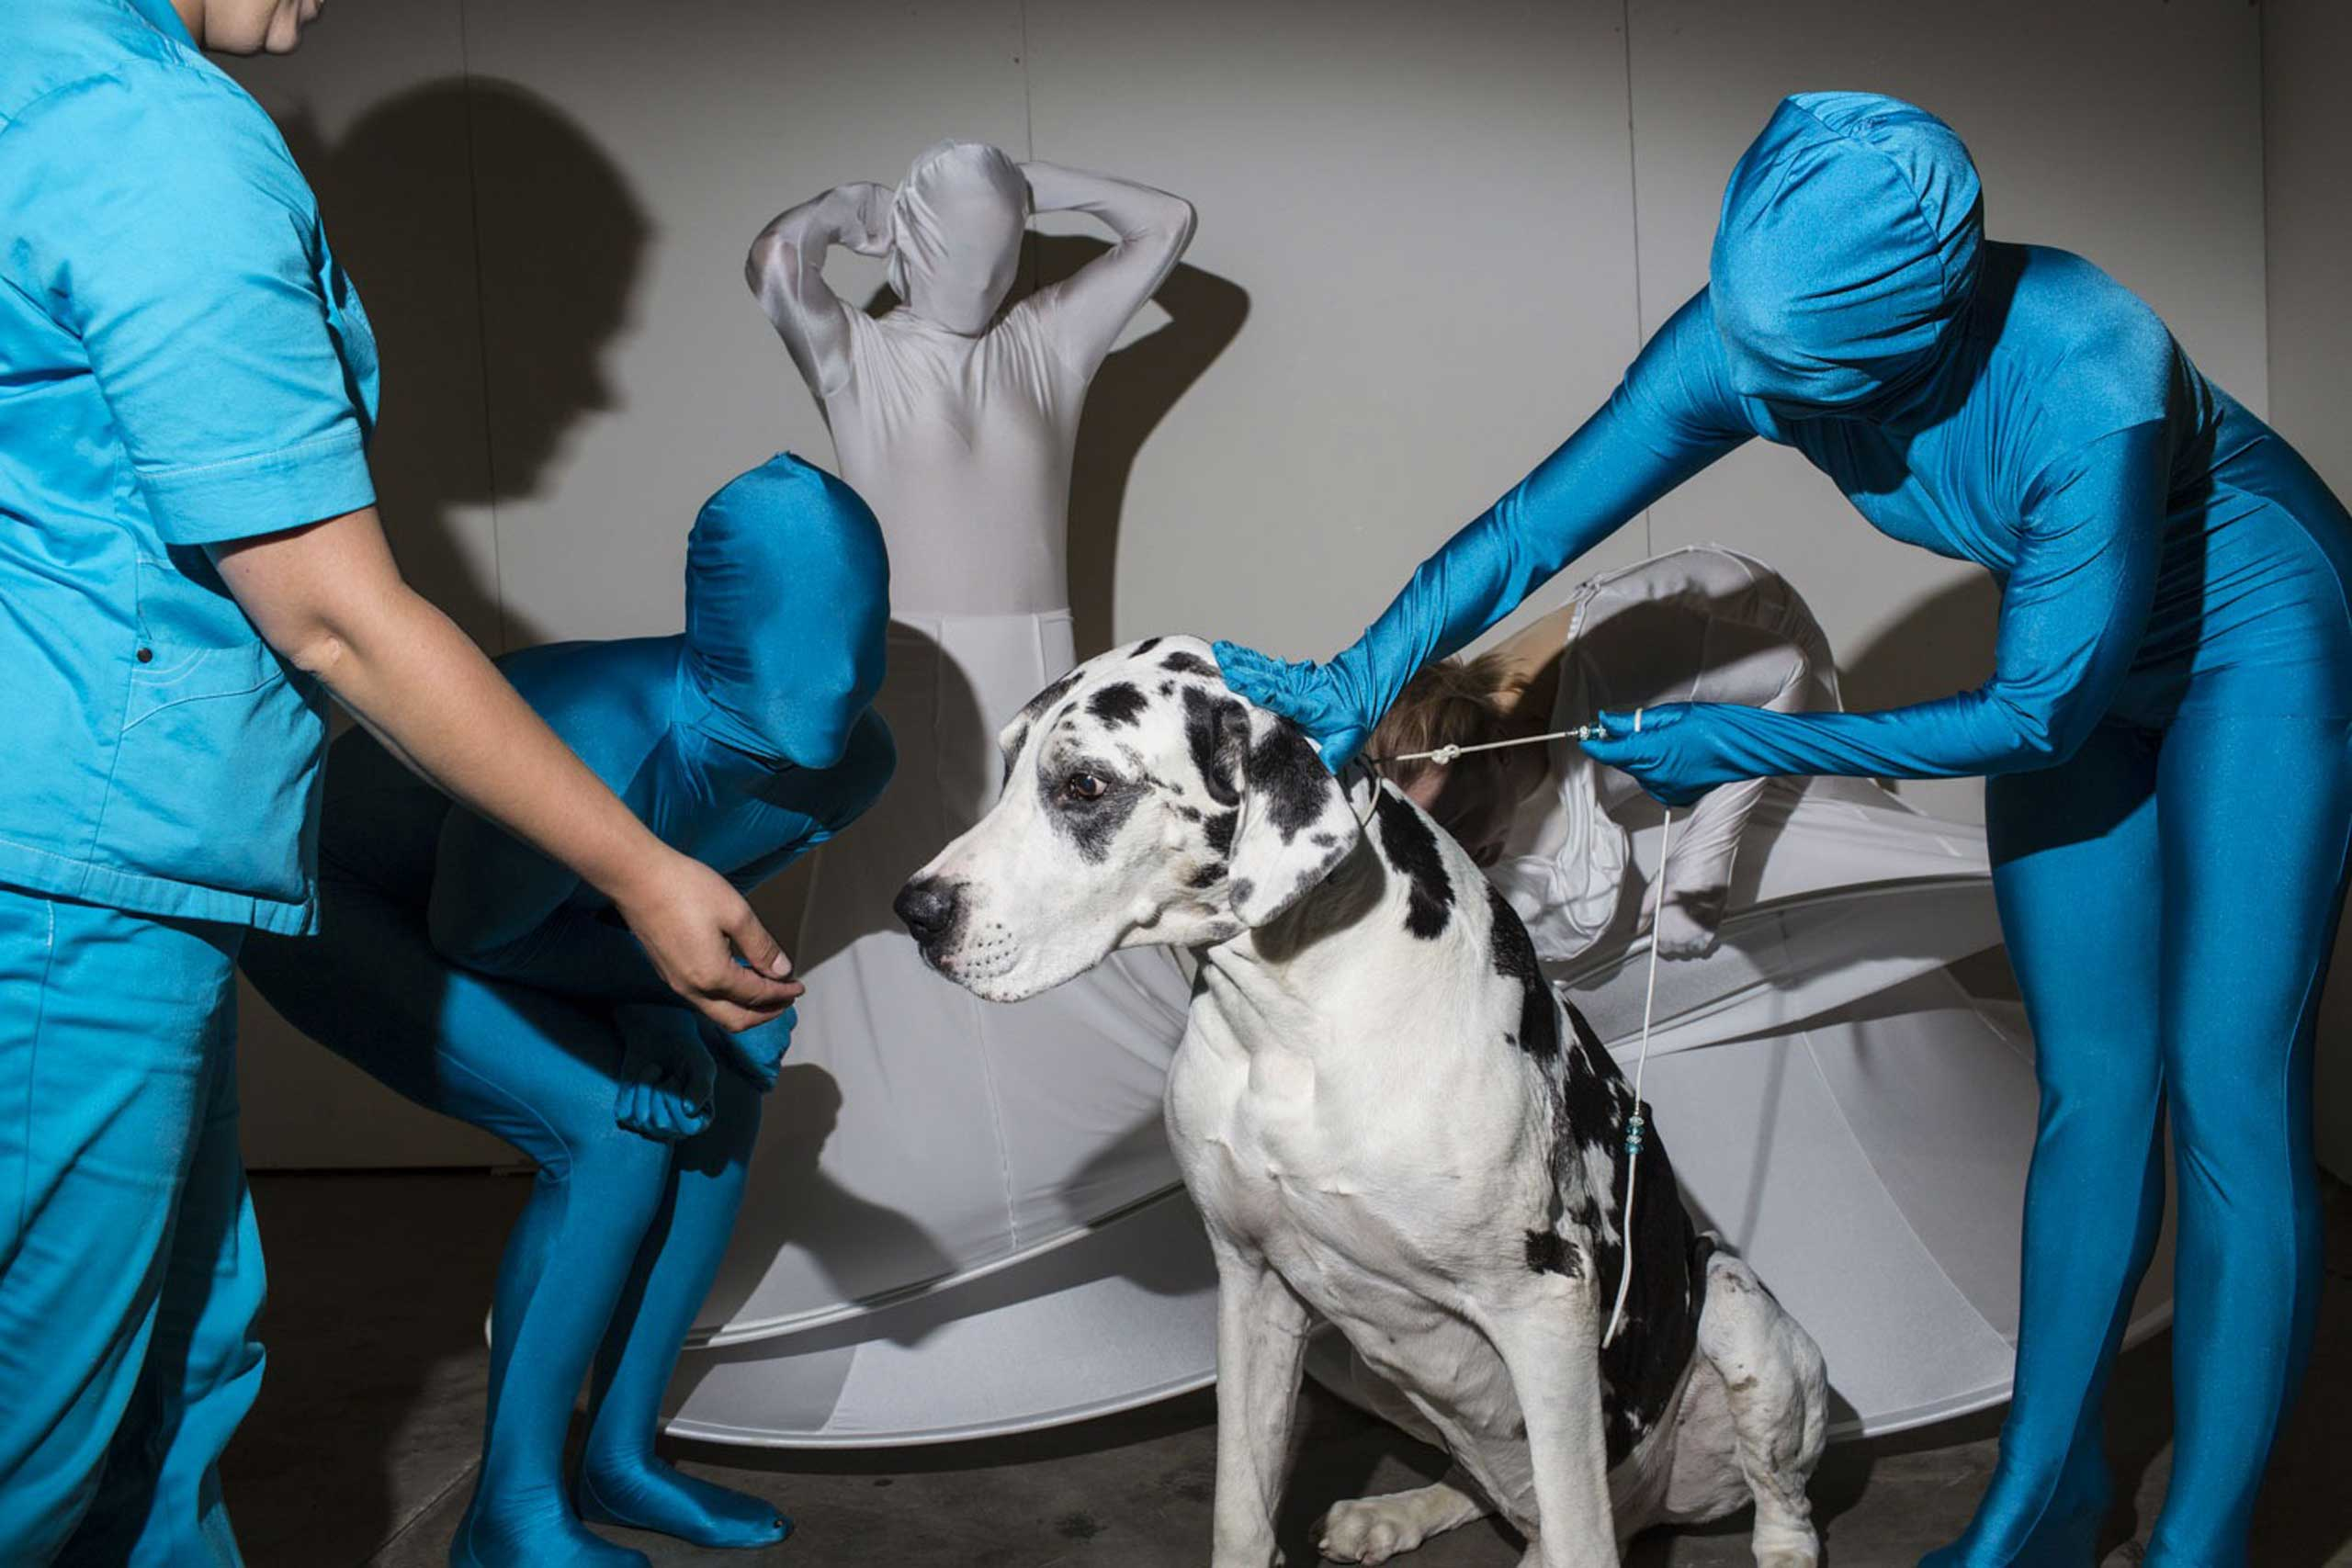 Kaapo, a nine year old Great Dane from Finland, meets performers from the Helsinki dance group High Heels backstage during the first day of the 2014 World Dog Show on Friday, August 8th, 2014, in Helsinki, Finland.From  Hounds of Helsinki: Behind the Scenes of the 2014 World Dog Show